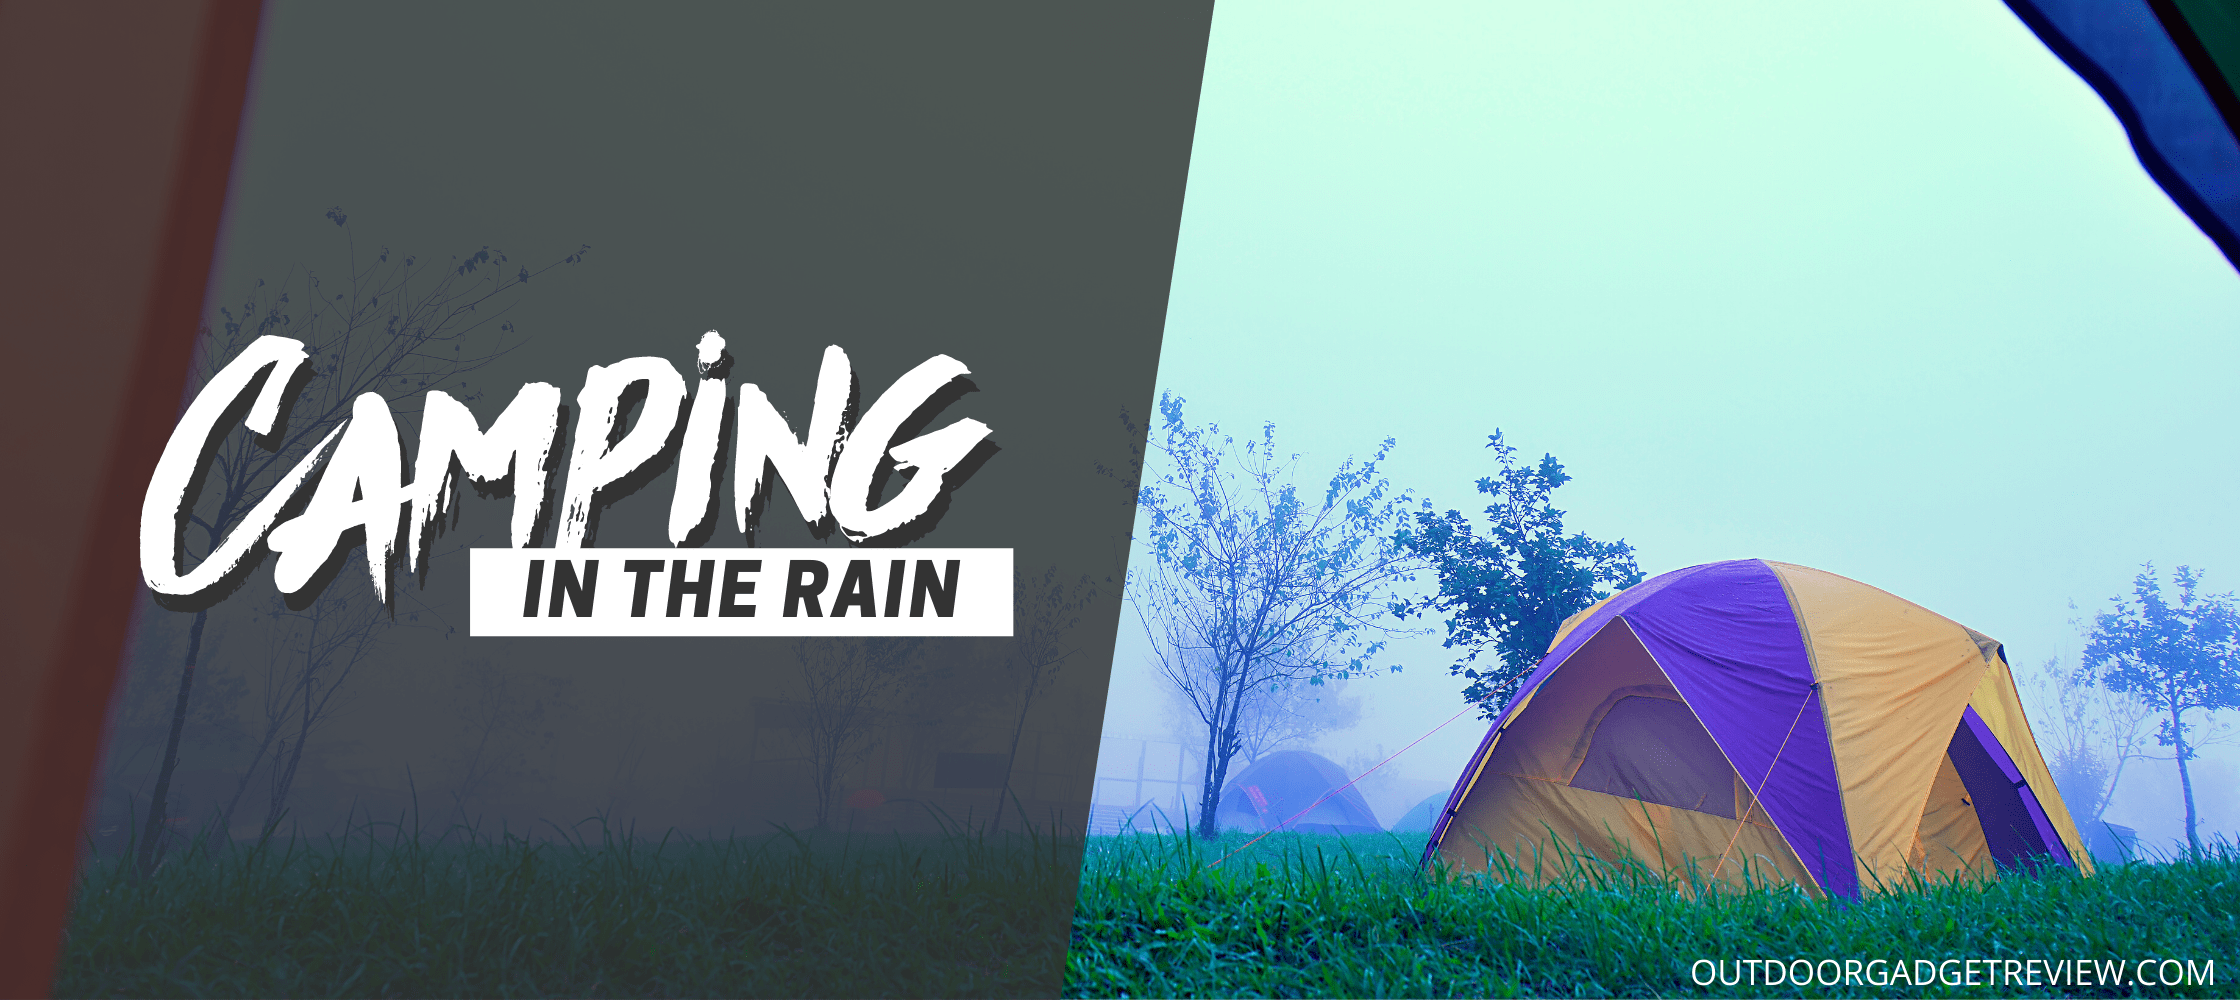 Camping in the rain banner (2)